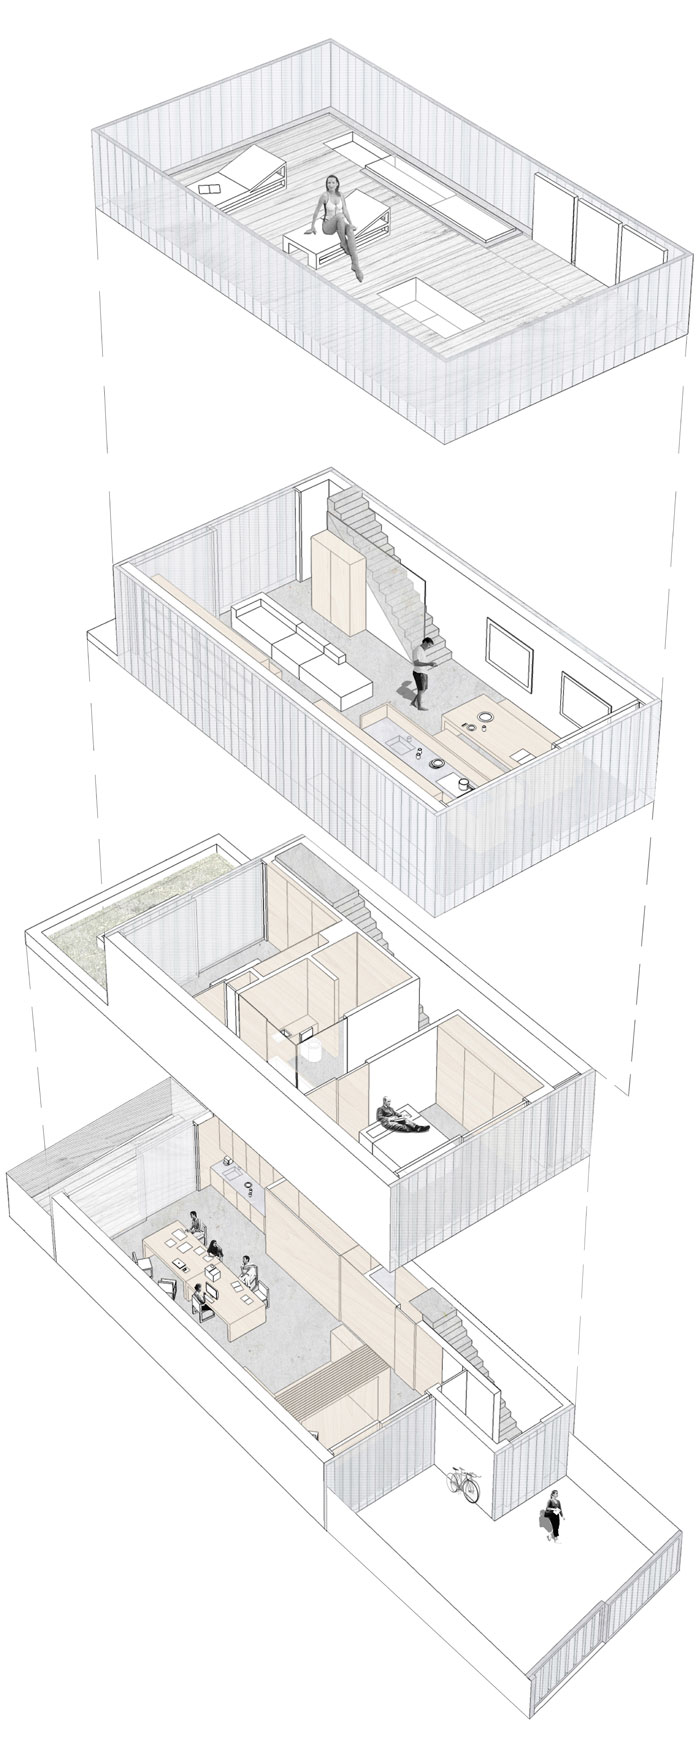 Axonometric Floor Plans